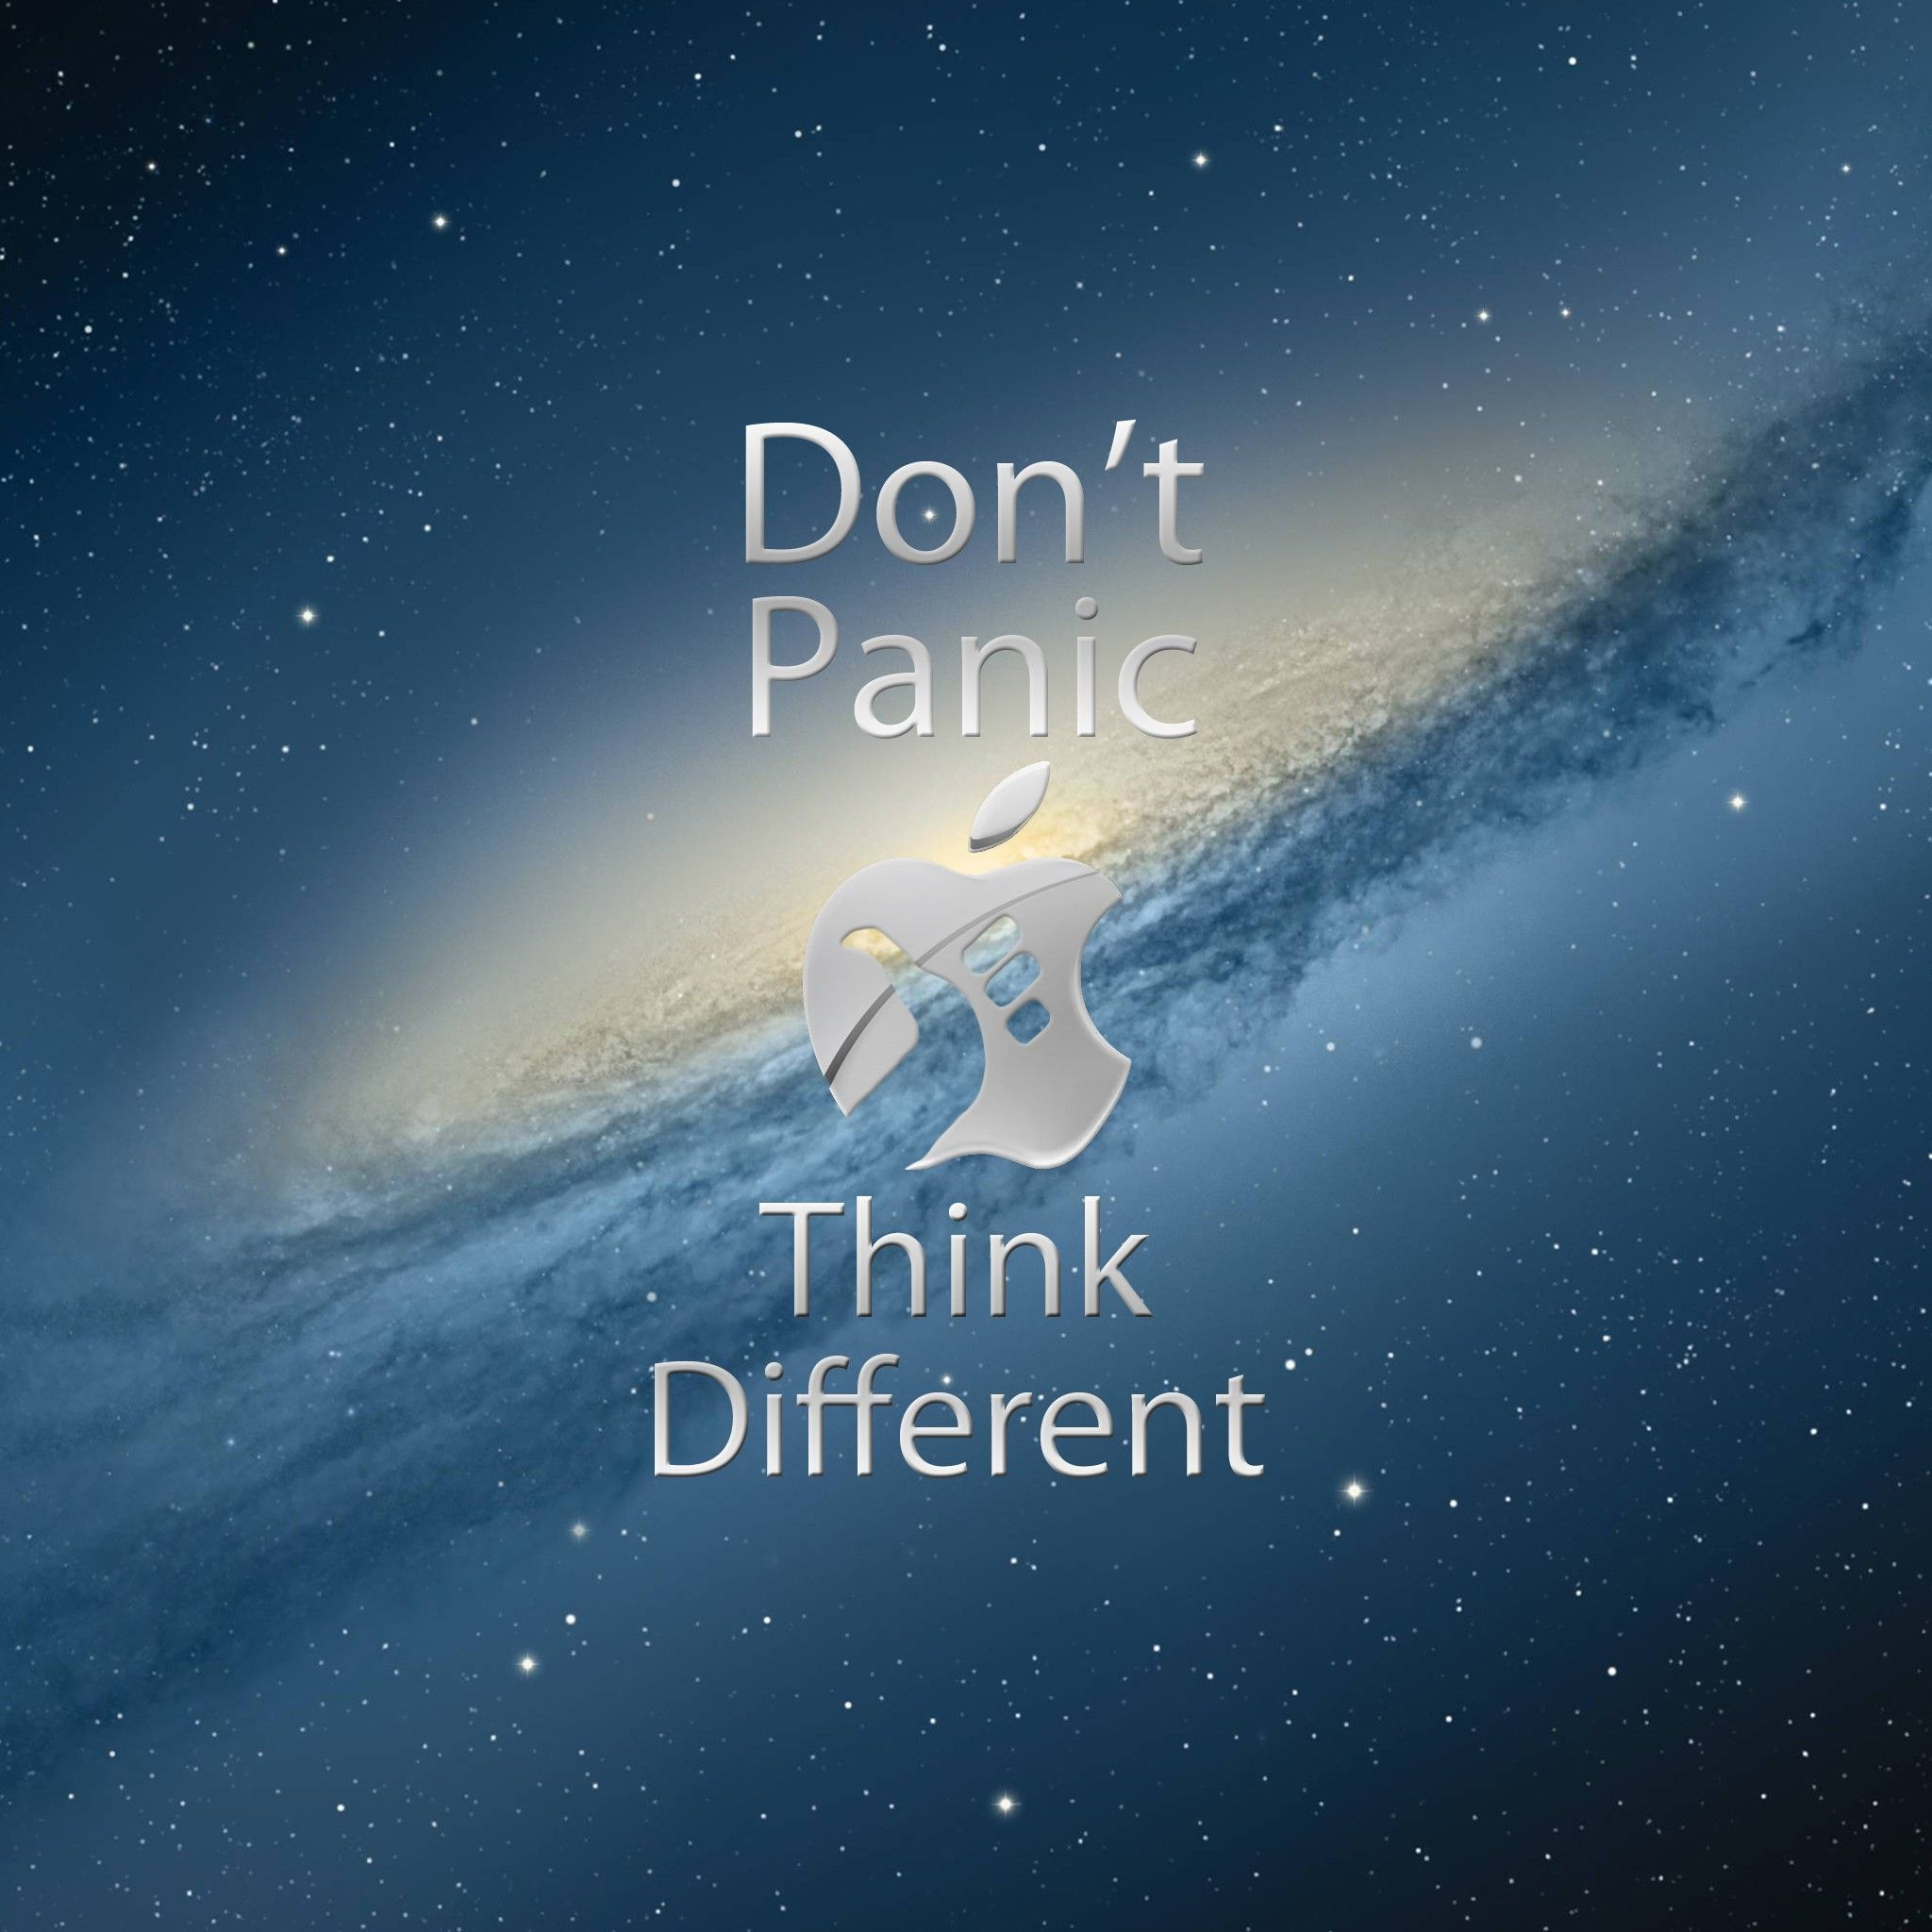 Dont Panic Tap To See Awesome Sayings Android Wallpaper At Mobile9